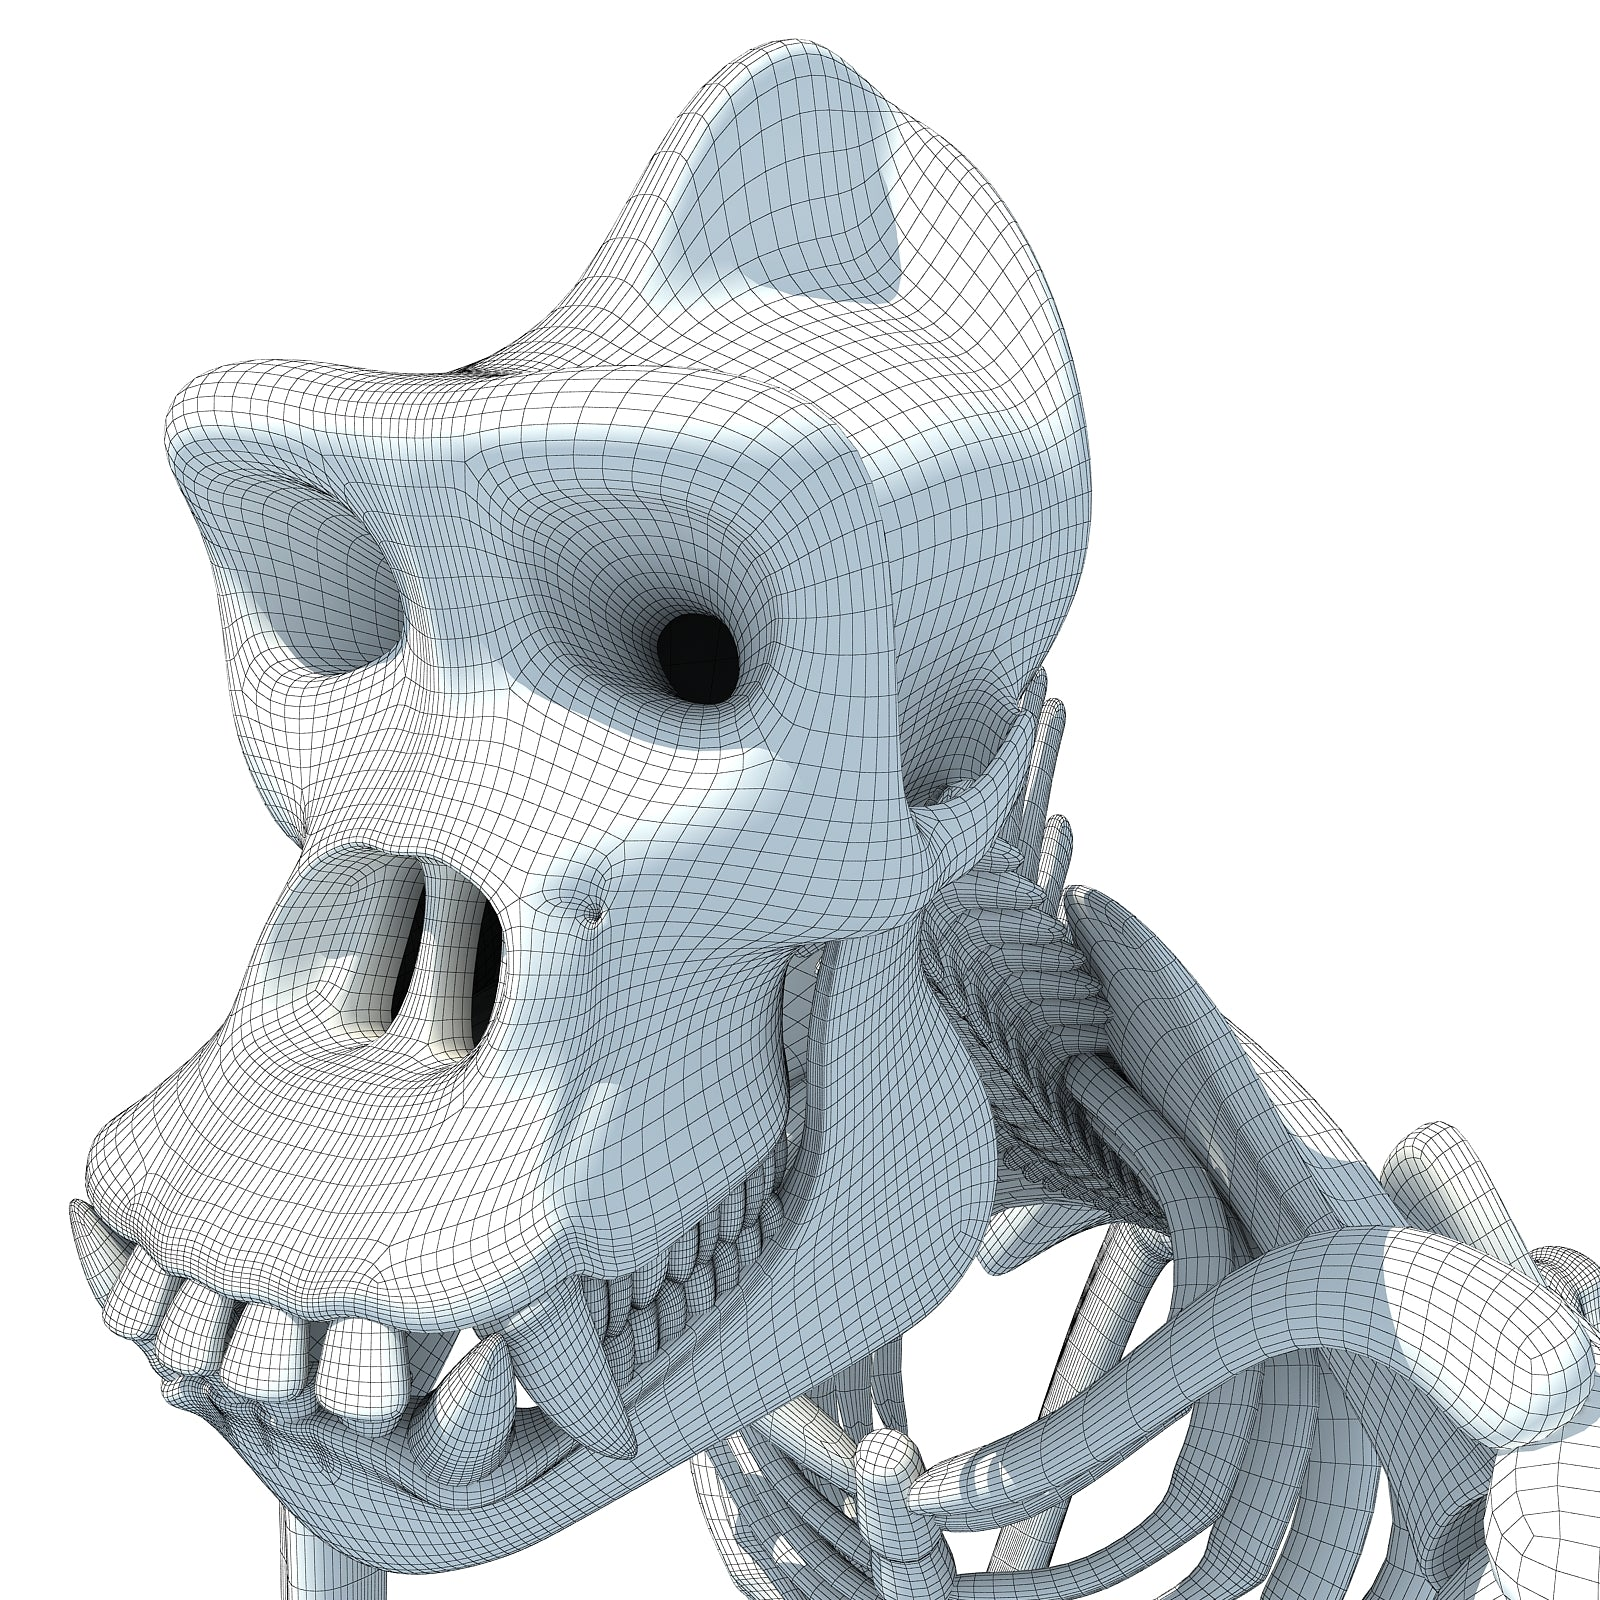 Gorilla Skeleton 3D Model